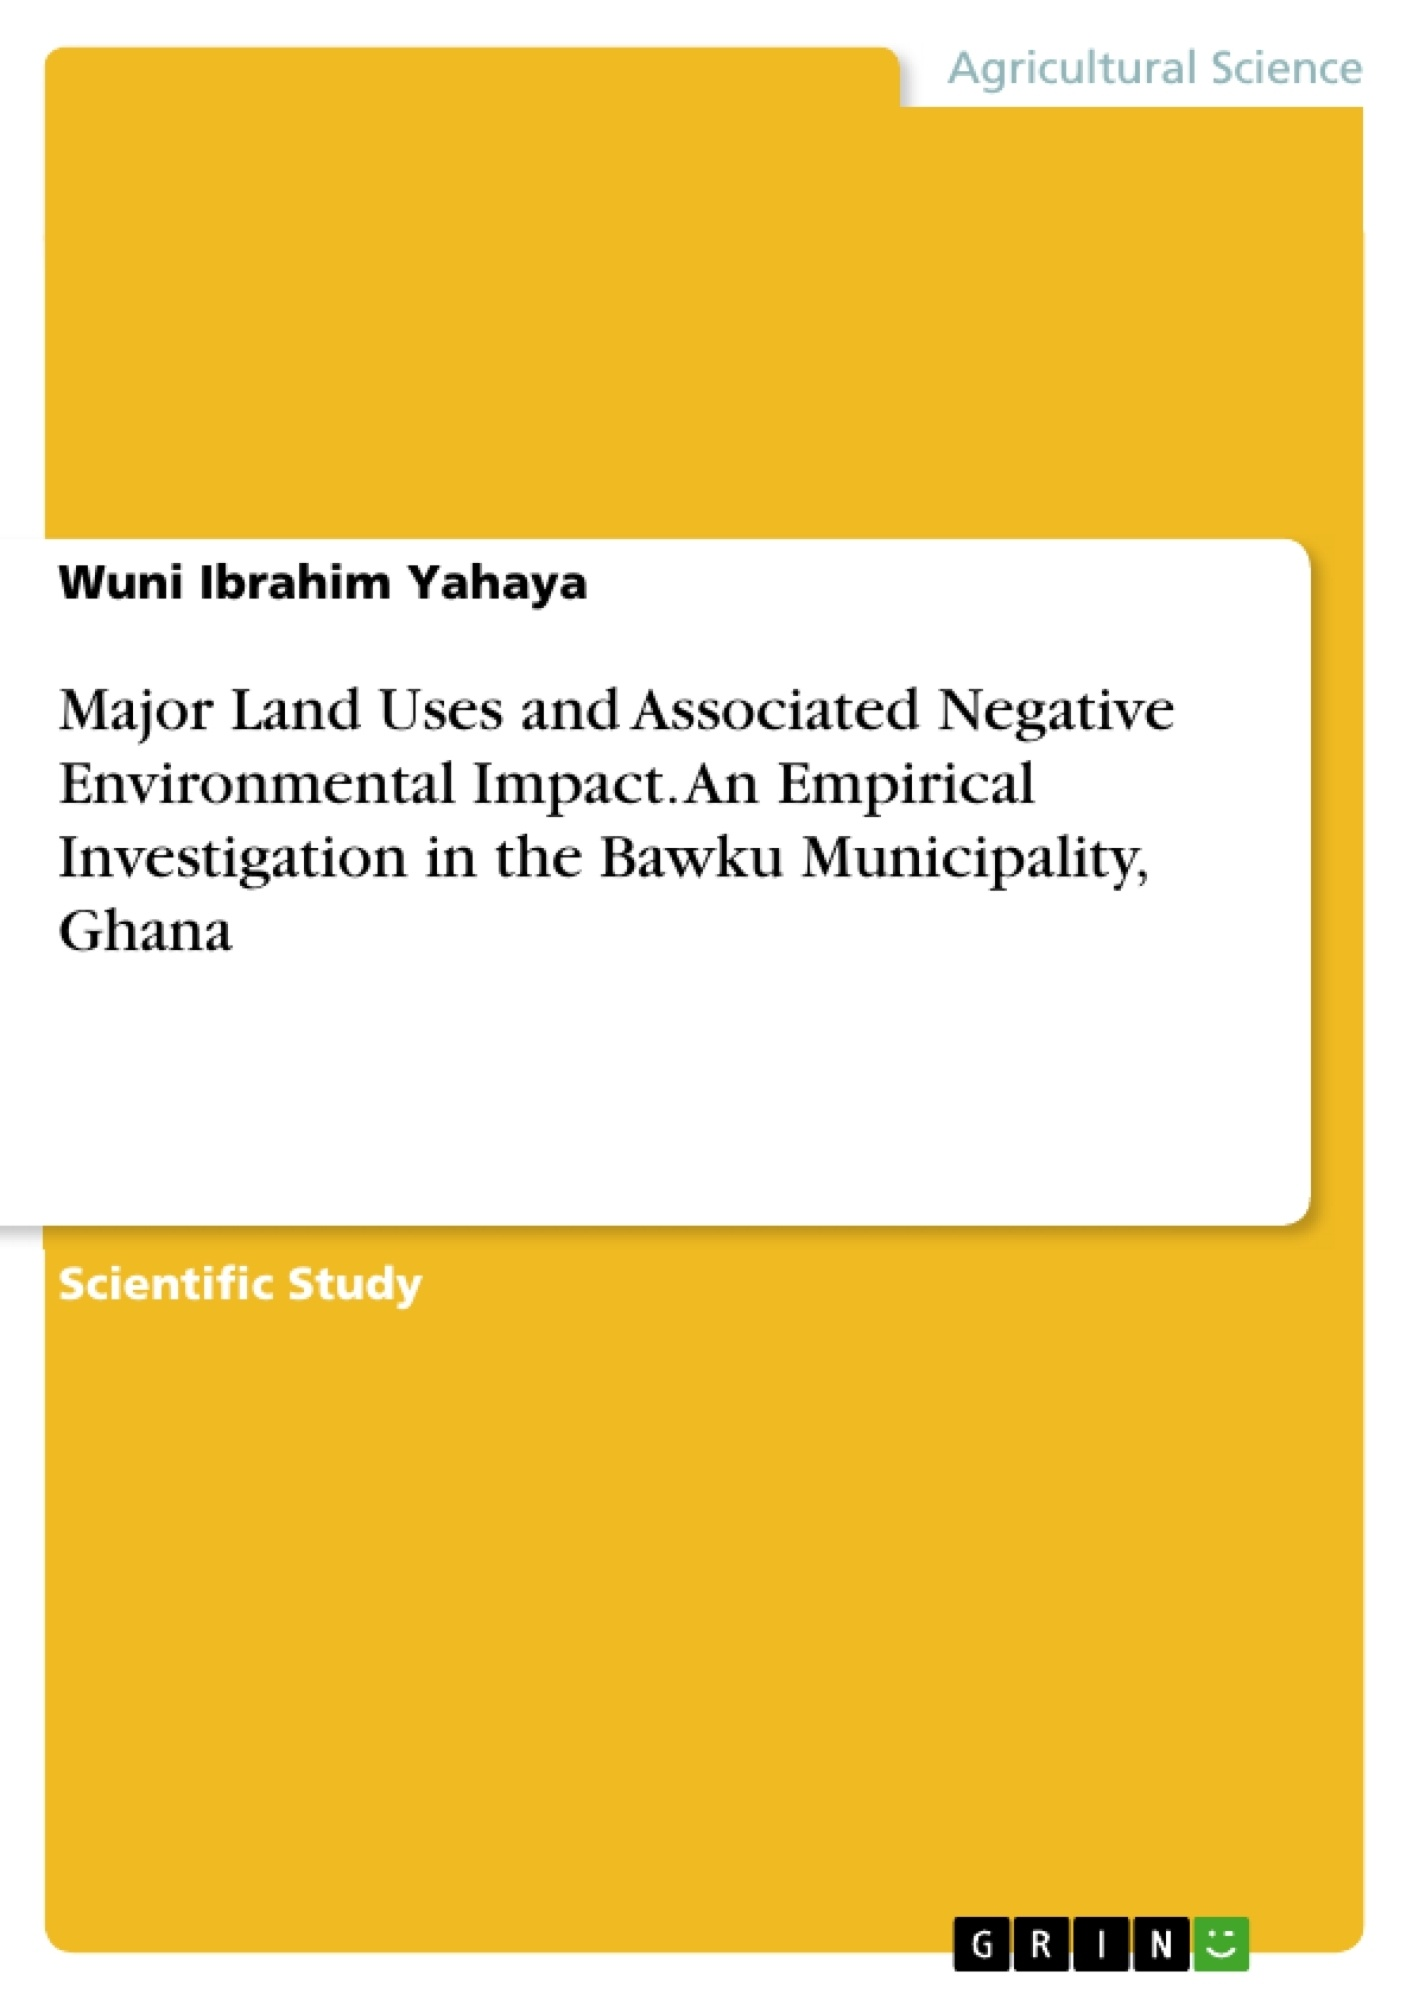 Title: Major Land Uses and Associated Negative Environmental Impact. An Empirical Investigation in the Bawku Municipality, Ghana